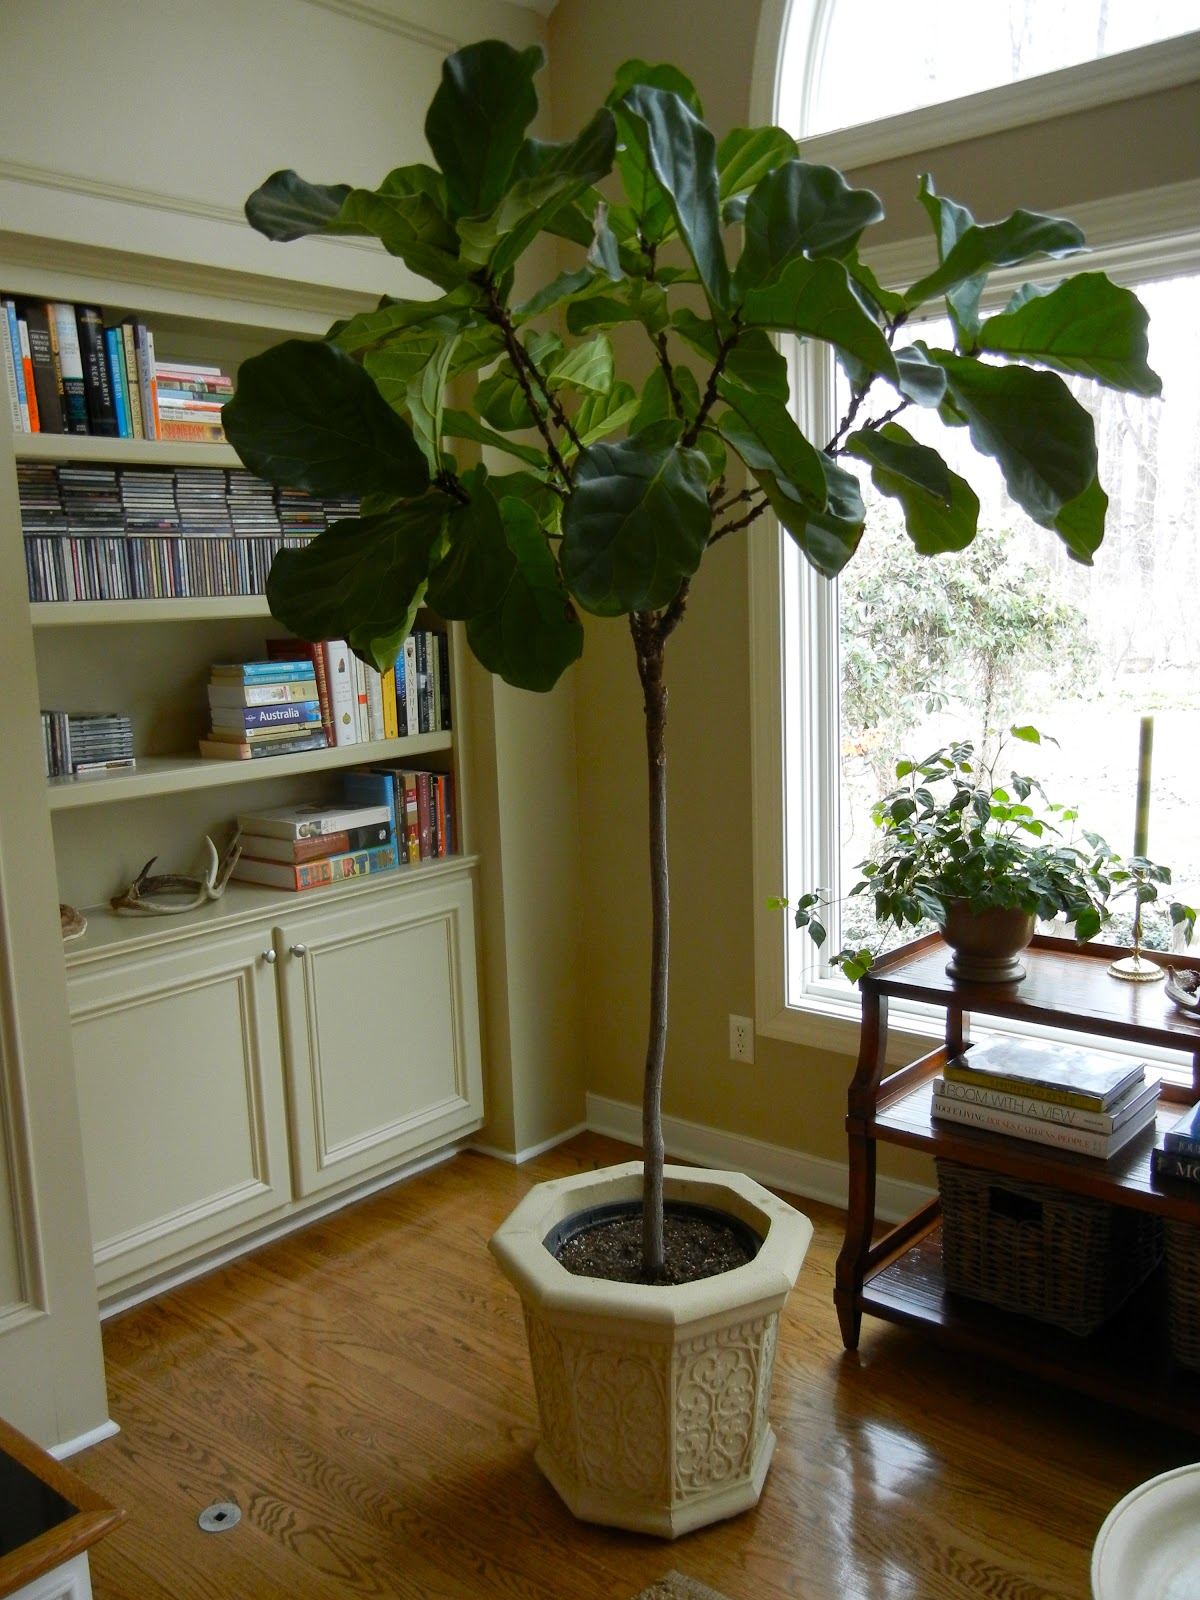 Our Fig Tree Sits Next To A Northern Exposure Window So It Reaches Bit Get The Light Came With Tangle Of Gorgeous Leaves When We Purchased And